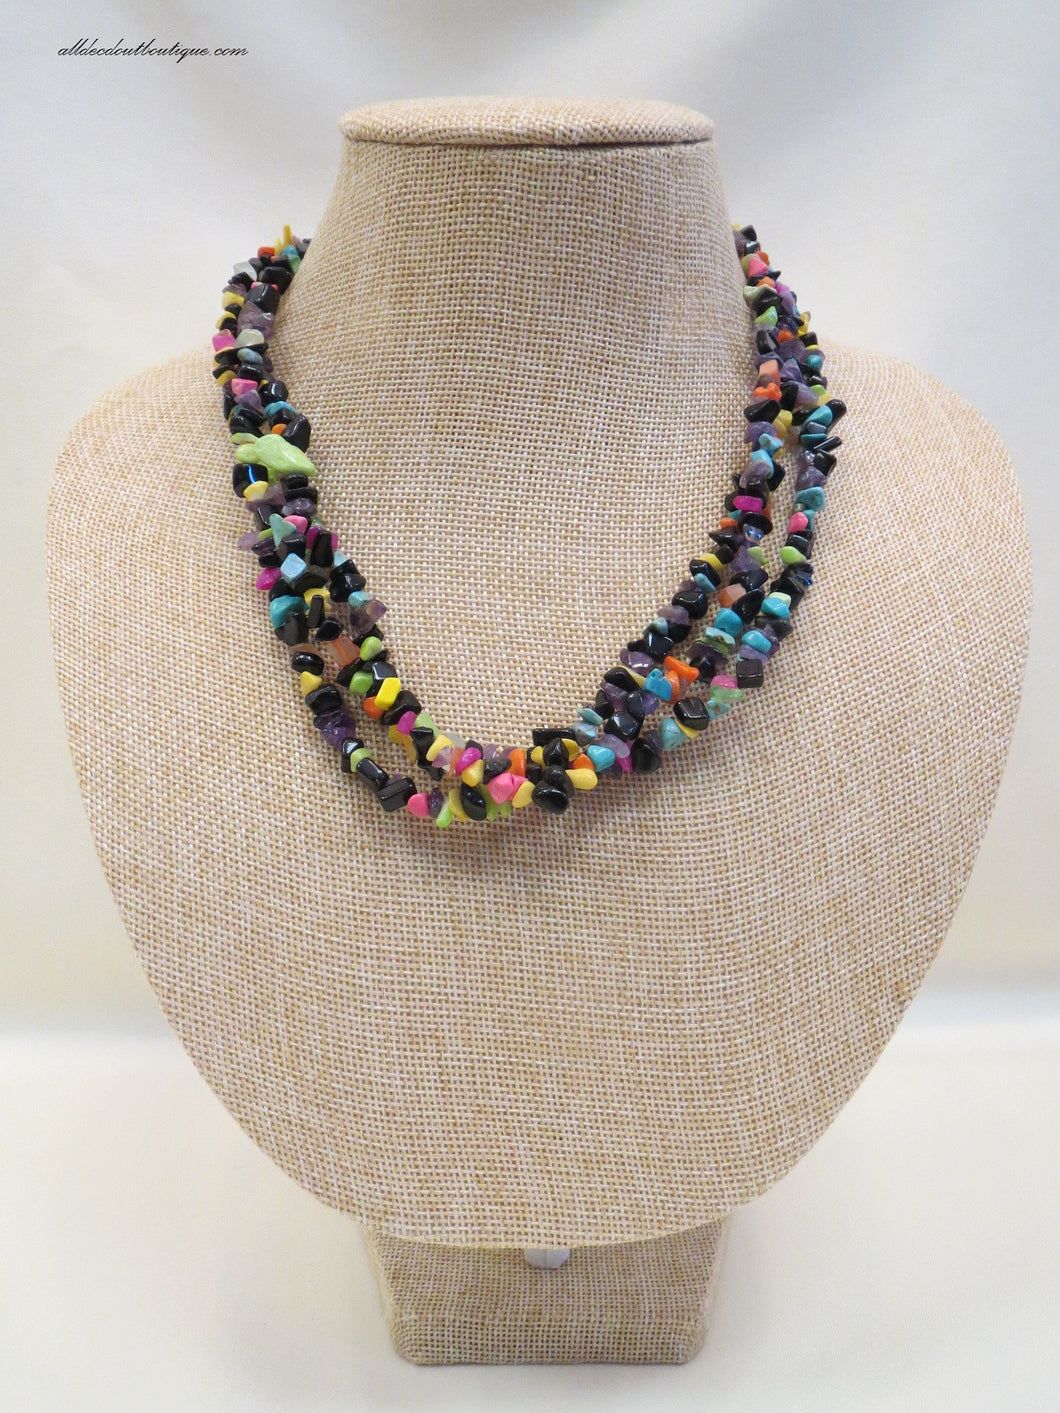 ADO | Necklace with Multicolored Beads - All Decd Out